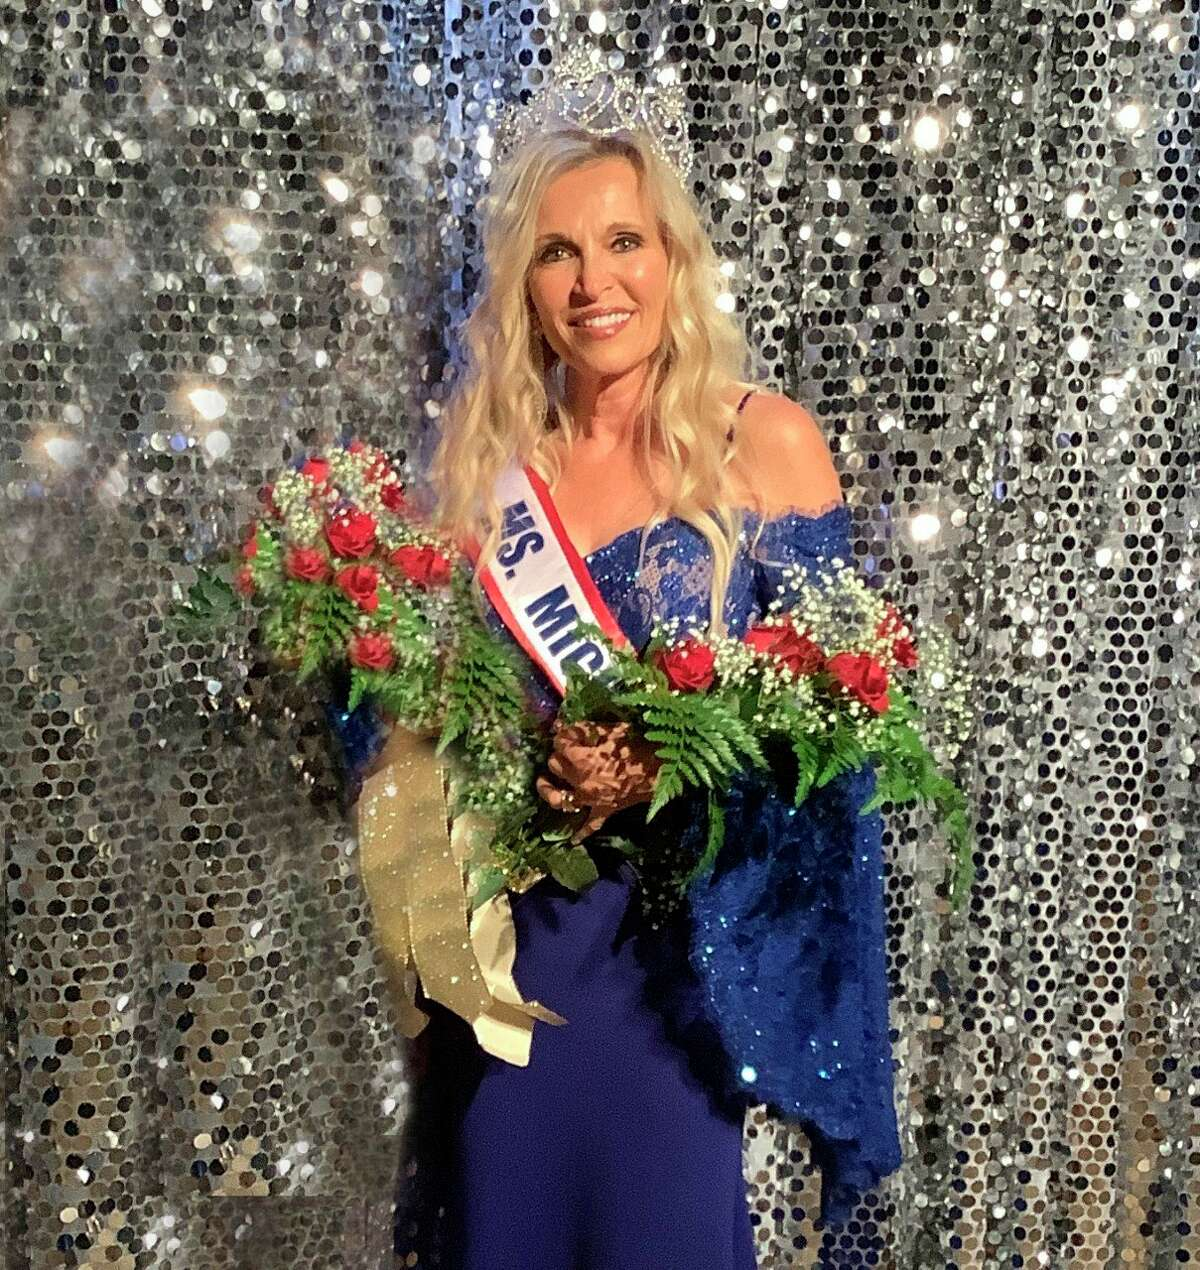 Beth Grothe, of Reed City, was crowned Ms. Senior Michigan 2021 in June. She is now competing in the Ms. Senior America contest to be decided in August.